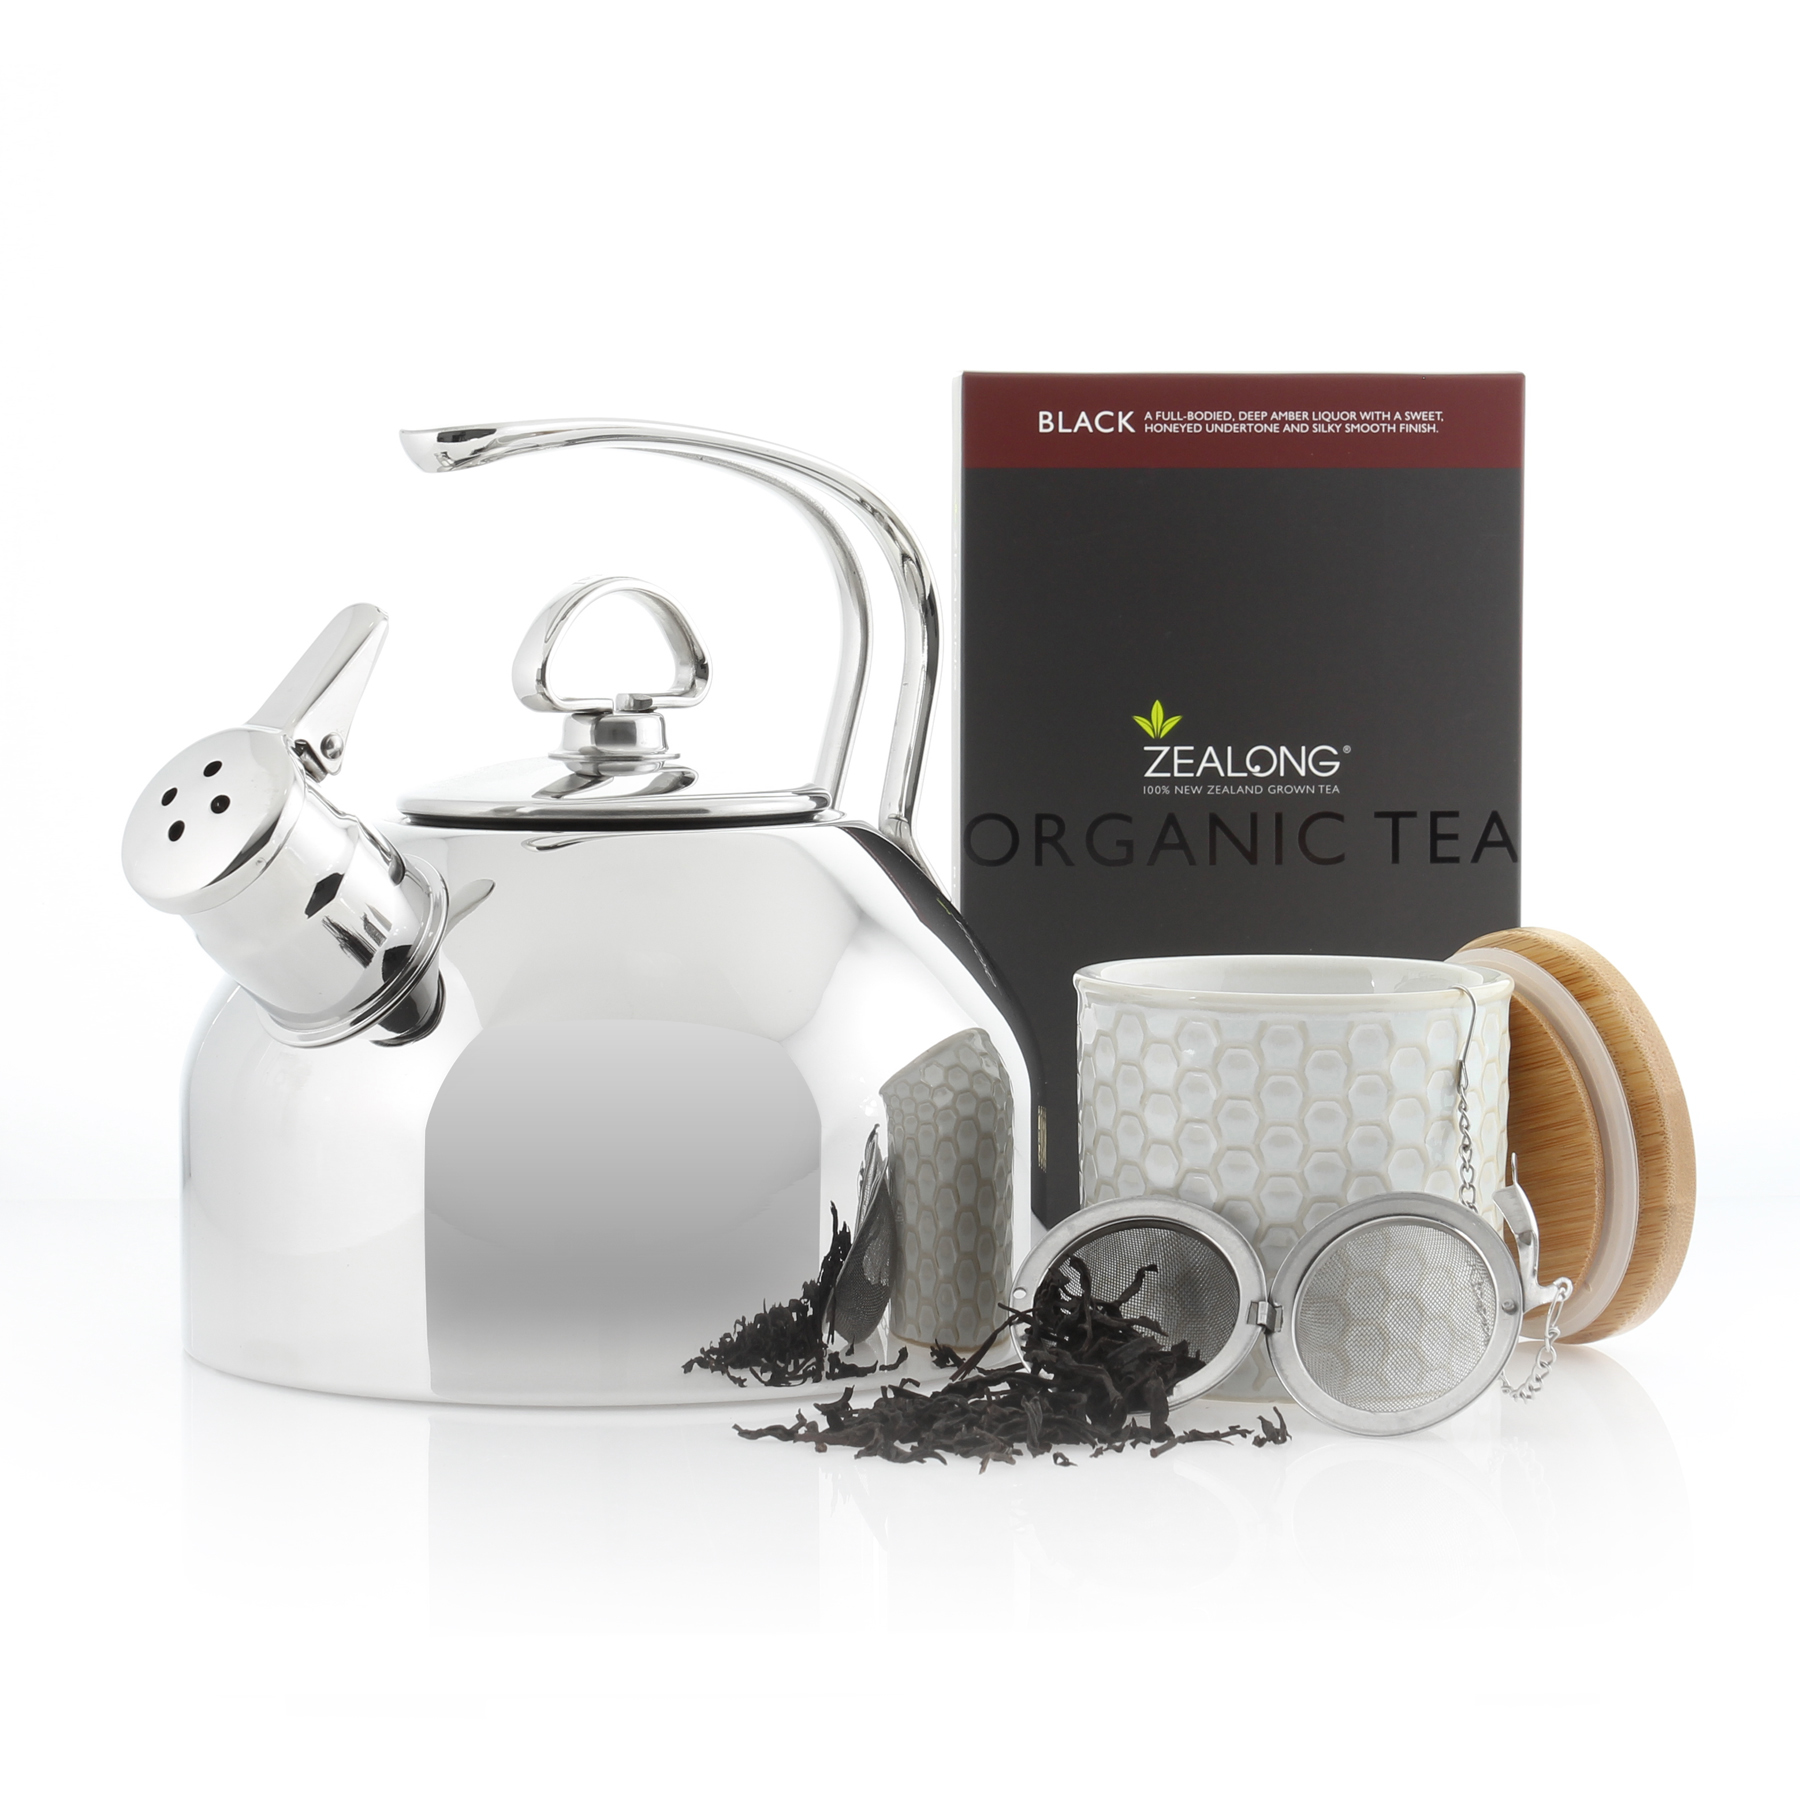 classic stainless steel teakettle 1.8 quart capacity original iconic design the only teakettle in the market to feature a two-tone Hohner harmonica whistle in action kiwi bundle